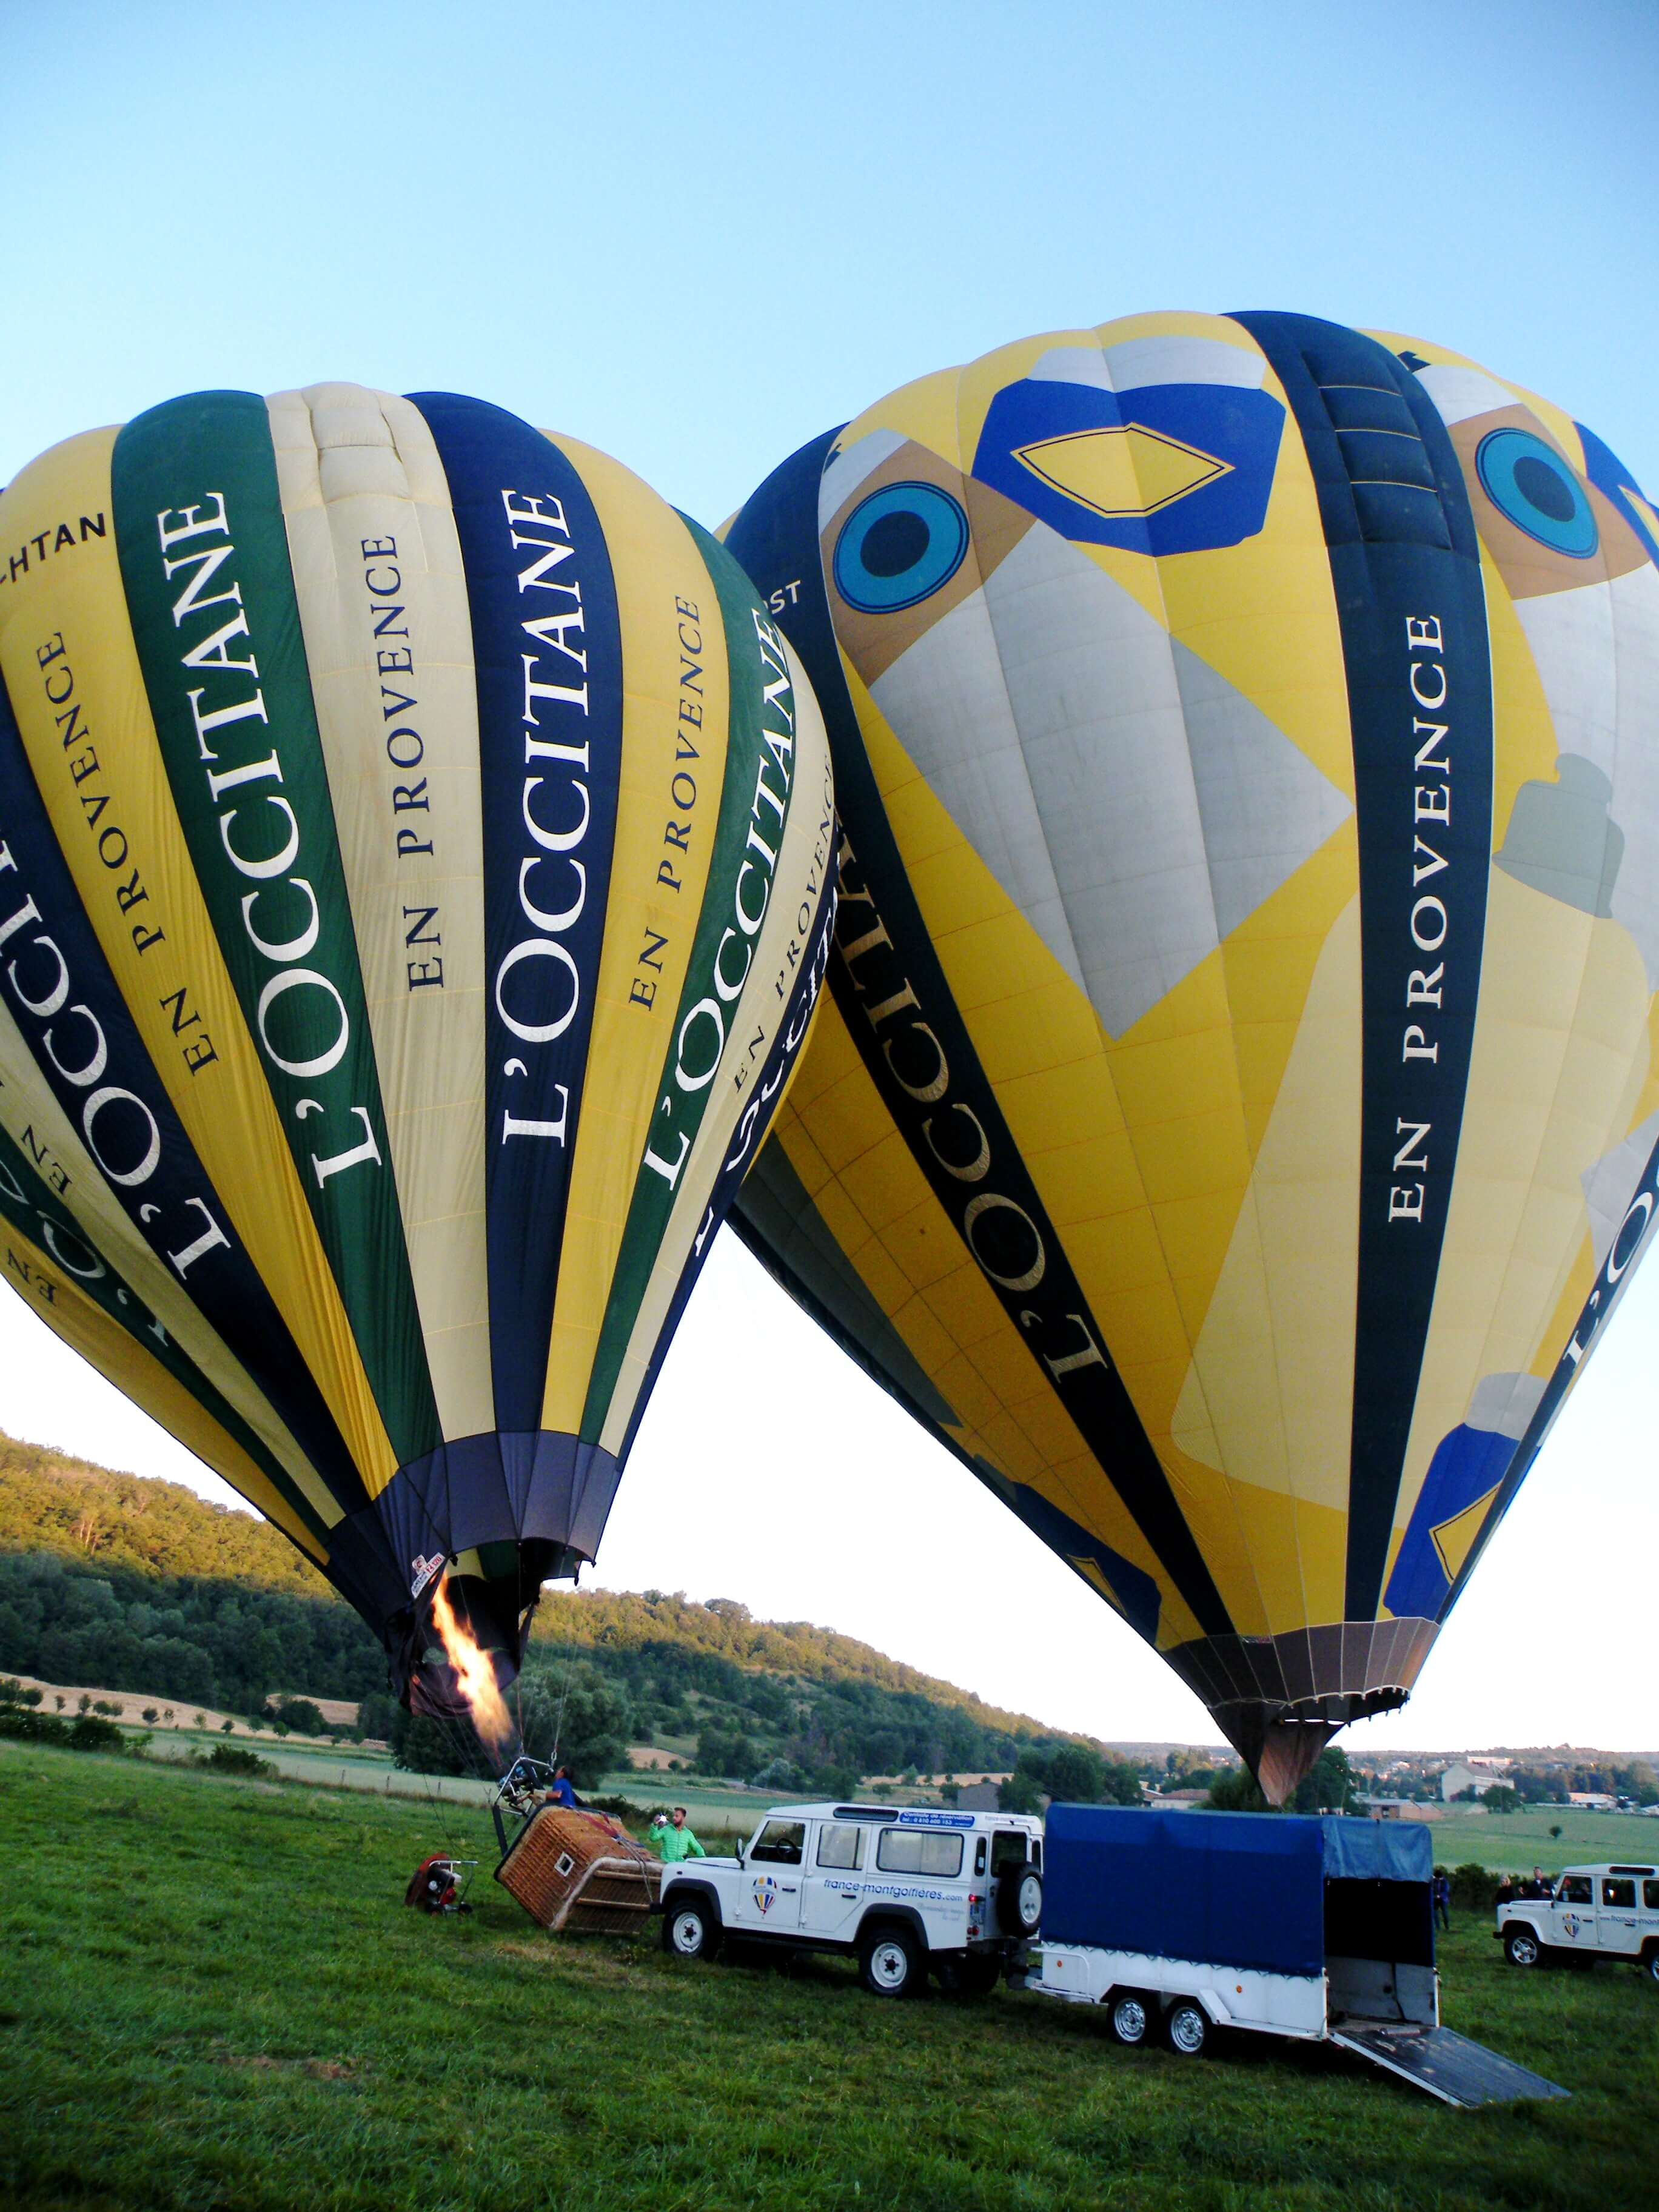 L'OCCITANE balloons getting ready to take us in the skies of Provence in the sunrise